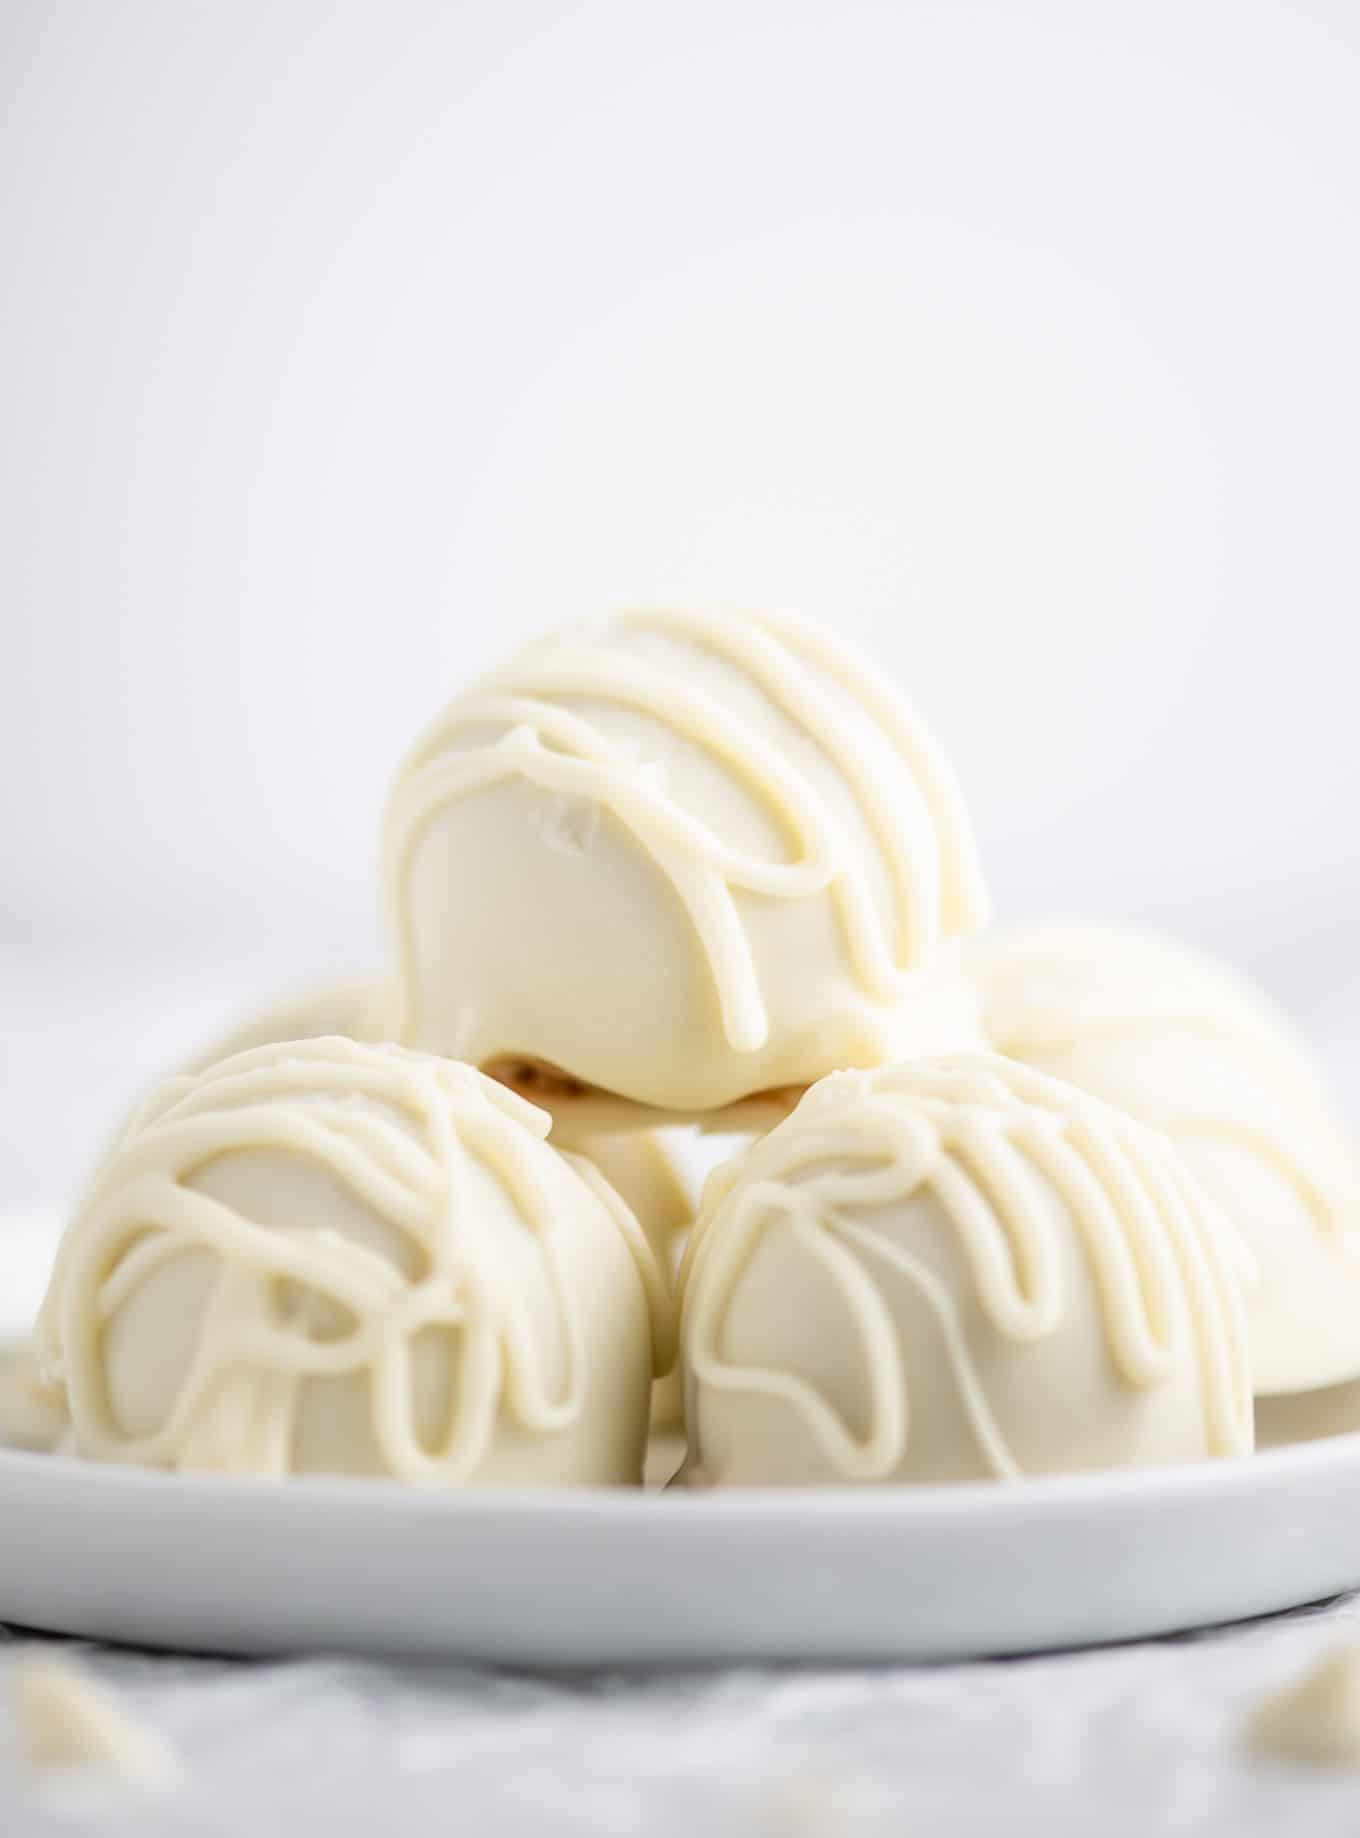 peanut butter truffles with white chocolate